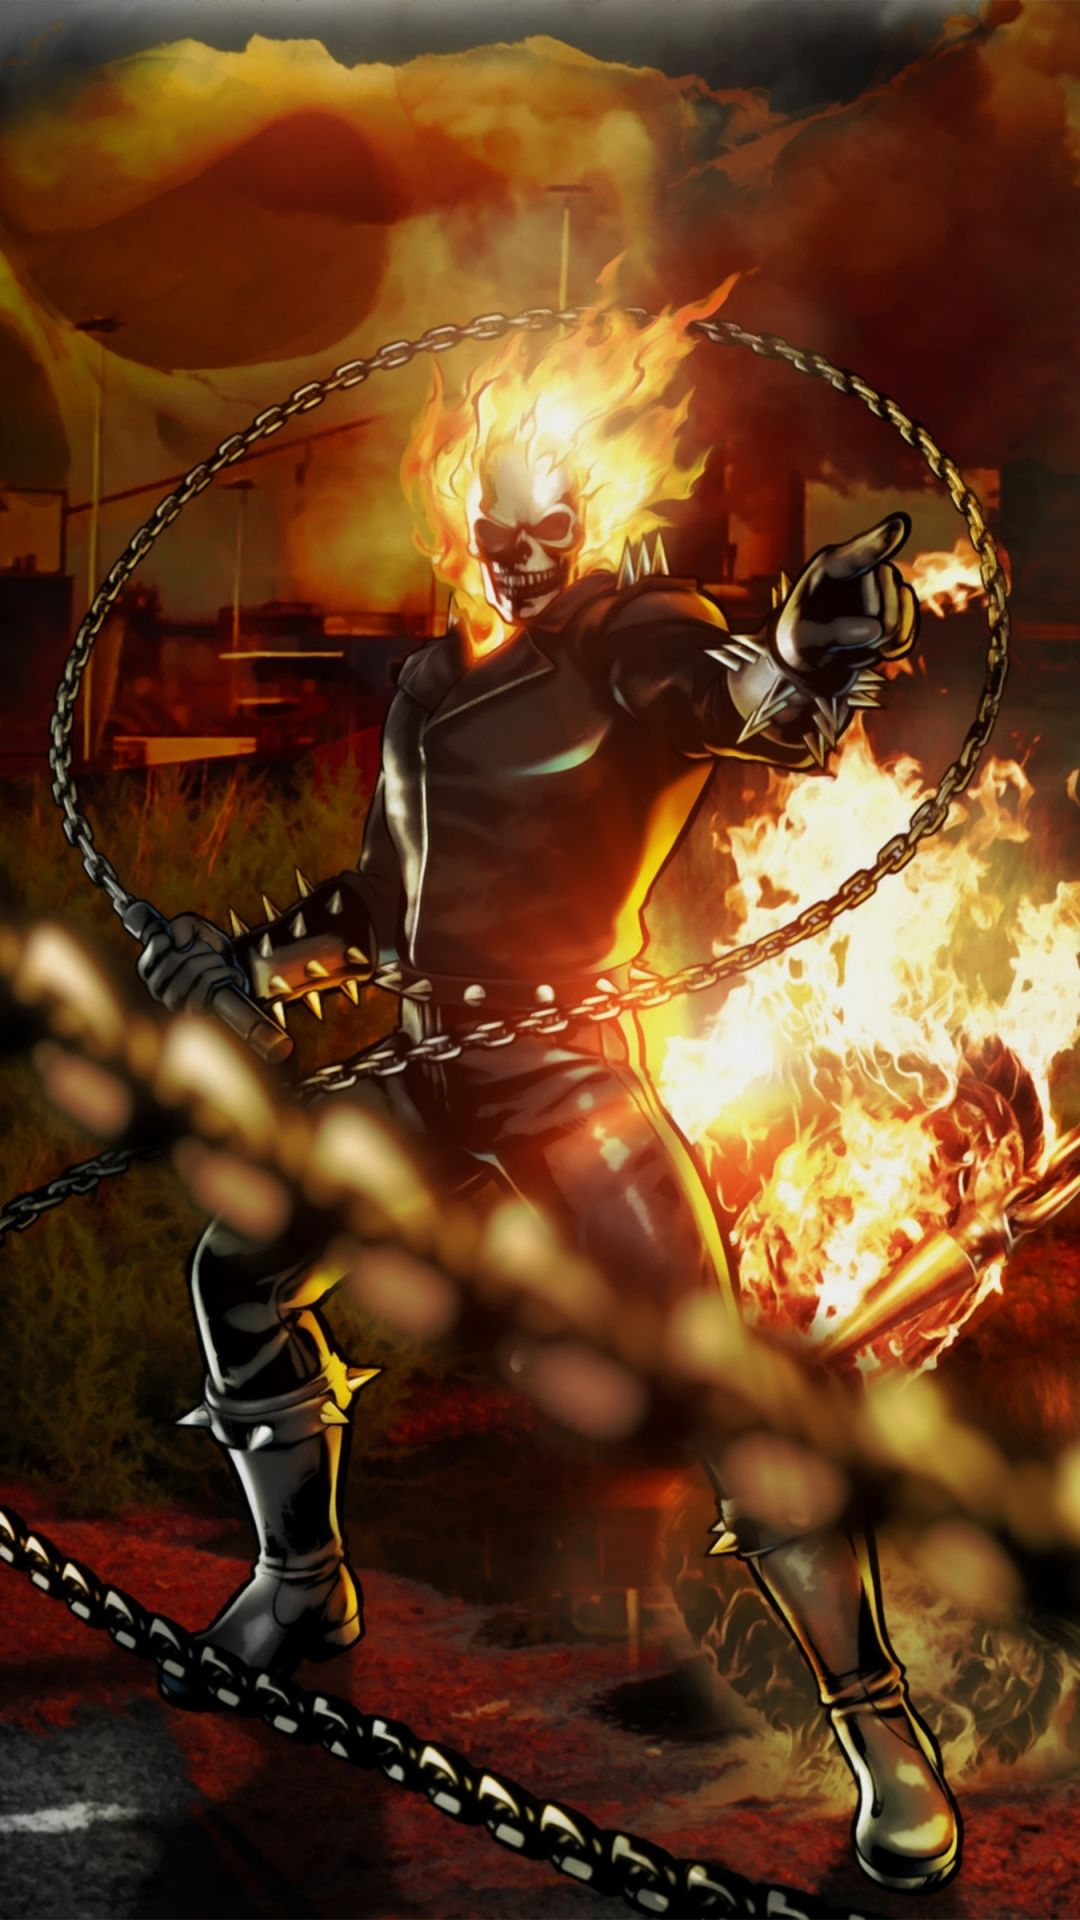 Marvel Vs Capcom 3 Capcom Marvel Ghost Rider With Images